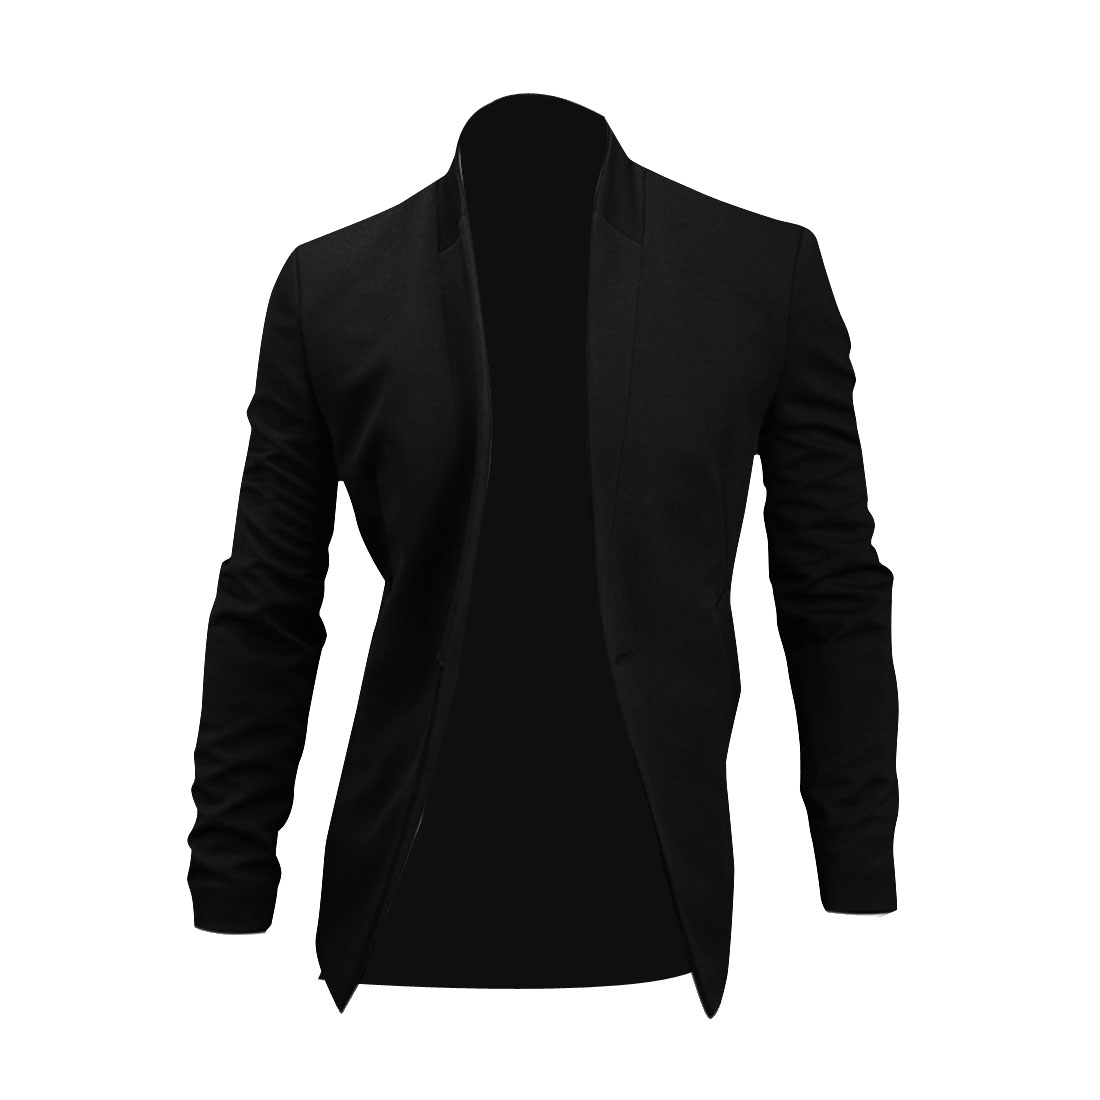 Men One Button Up Long Sleeve Pockets Front Blazer Black M